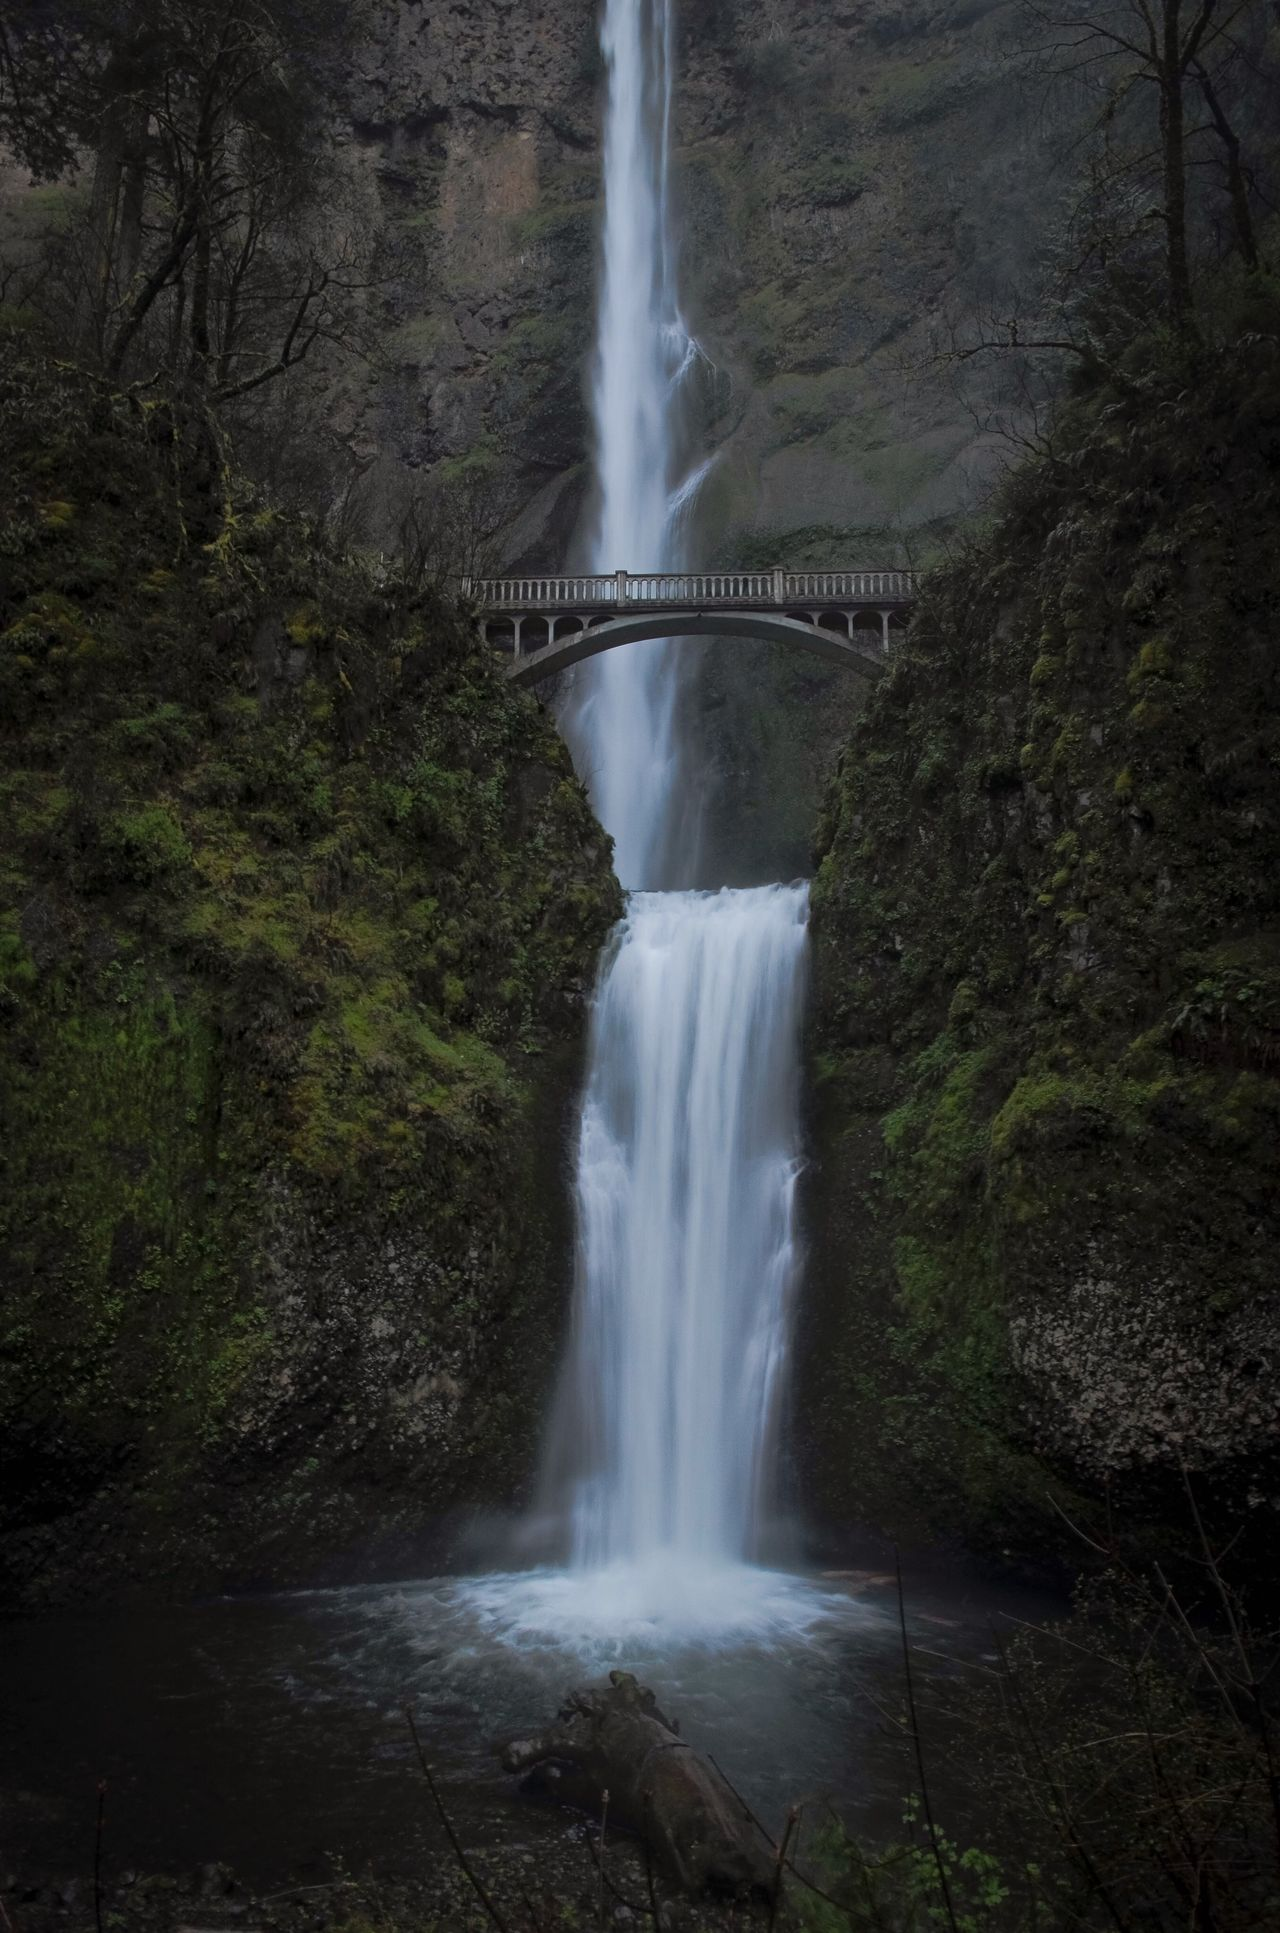 A rare empty bridge. Waterfall Long Exposure Motion Water Flowing Water Bridge - Man Made Structure Blurred Motion Power In Nature Scenics Connection River Nature Built Structure Beauty In Nature No People Outdoors Rapid Architecture Travel Destinations Day EyeEm Best Shots EyeEmBestPics Bridge Oregon Multnomah Falls